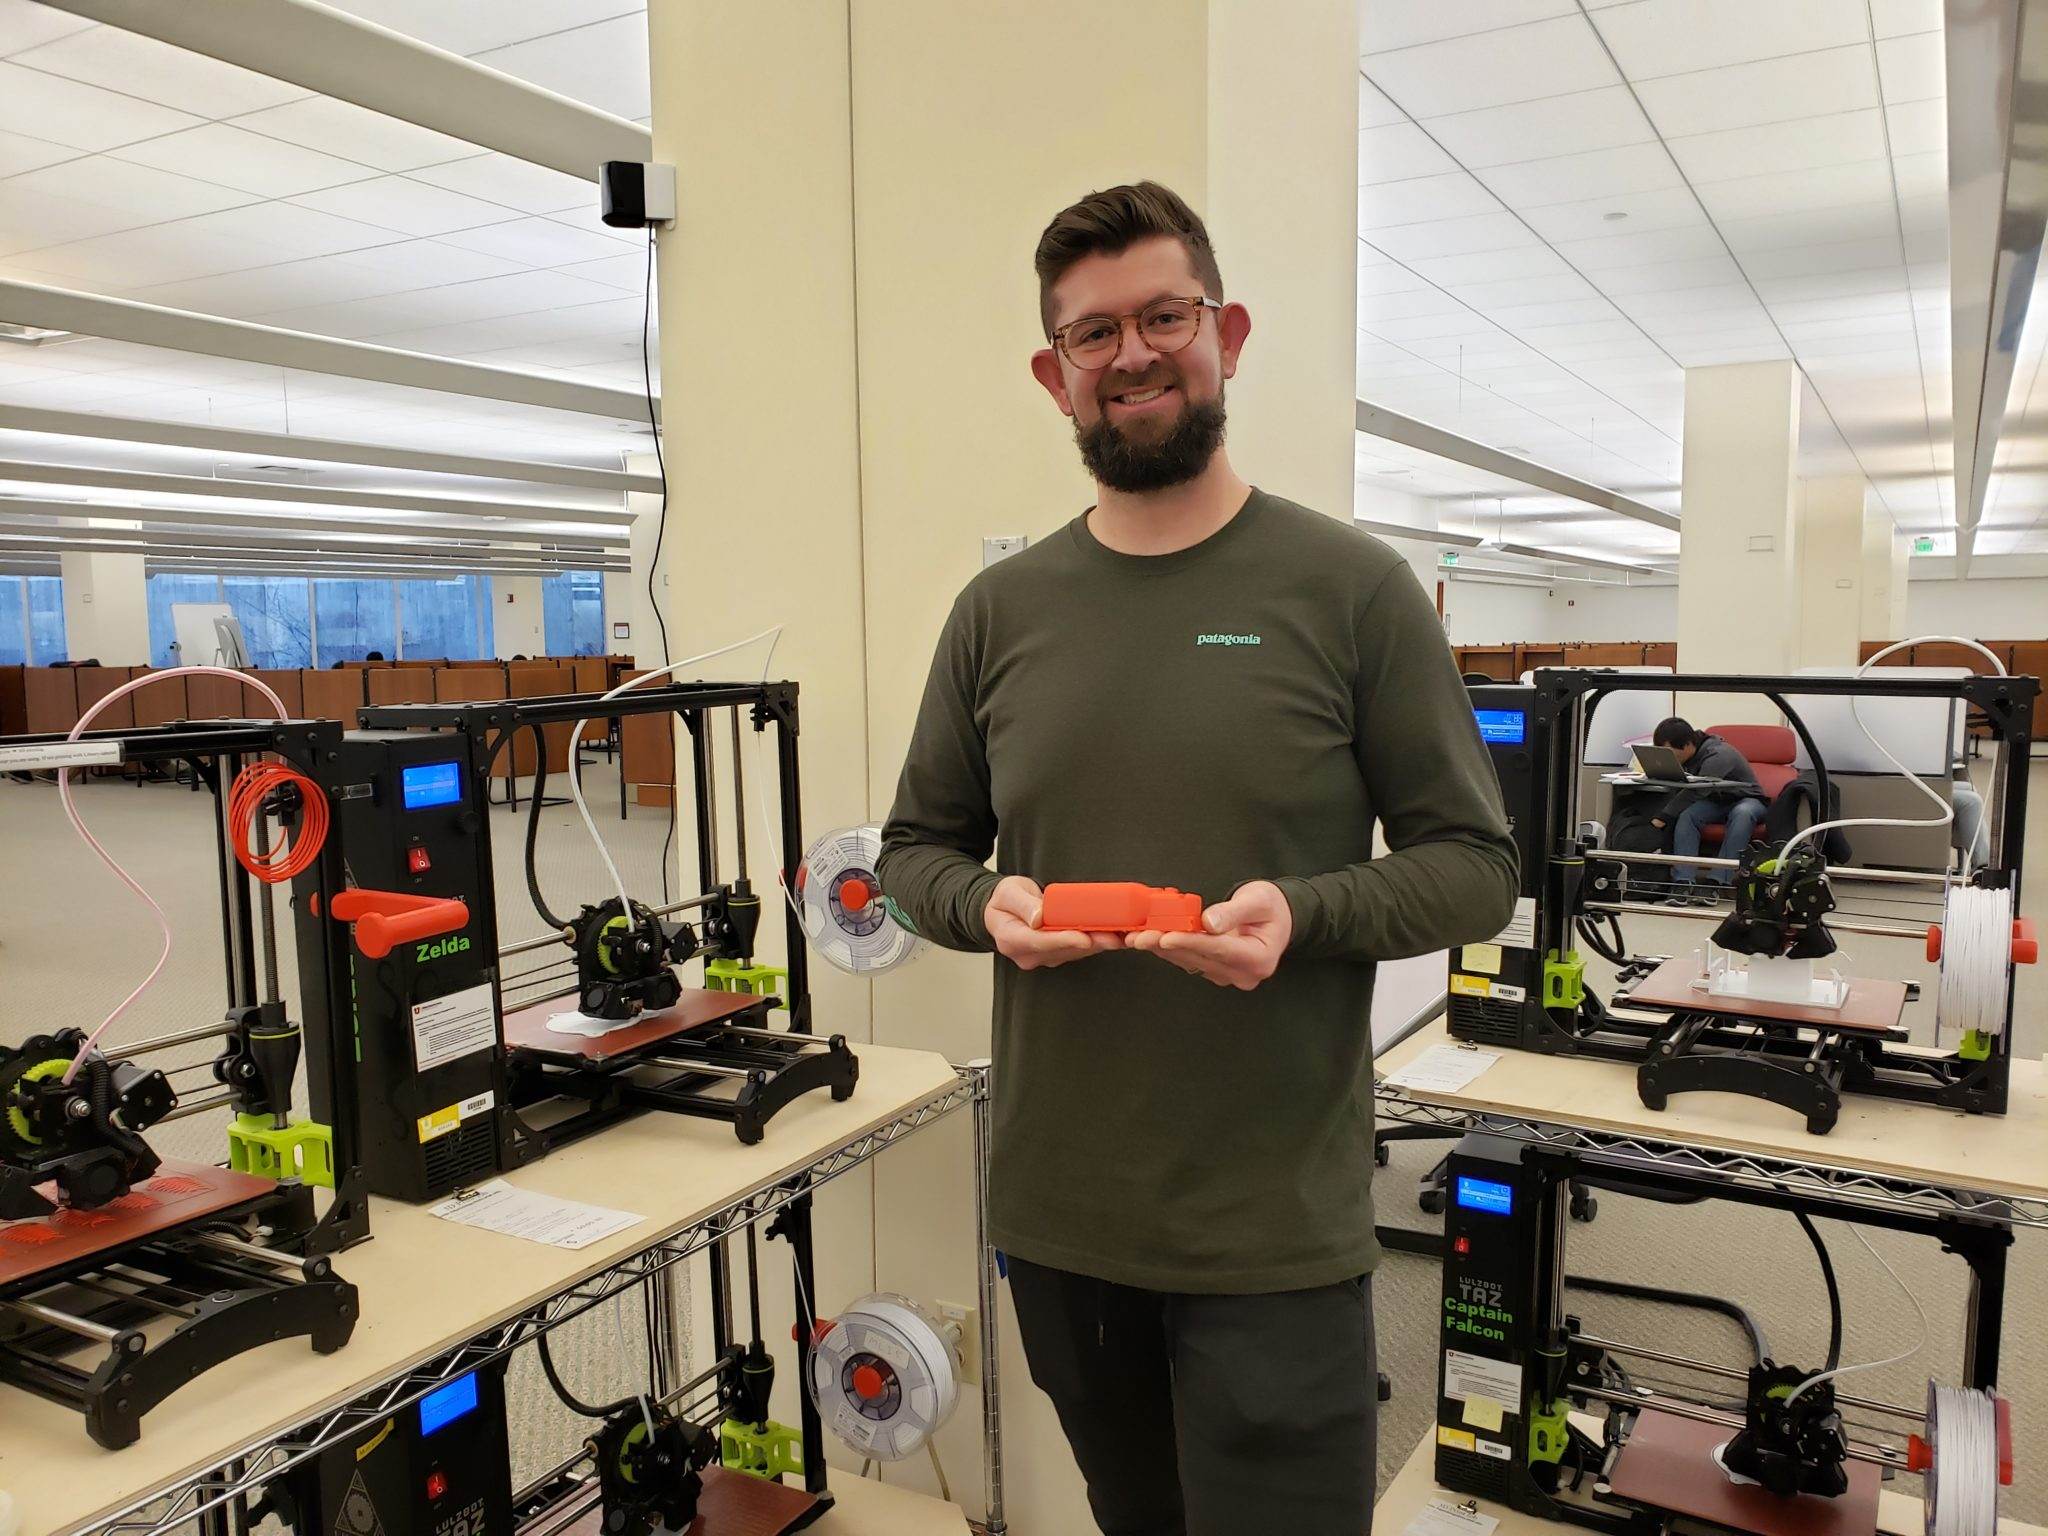 man smiling in front of 3D printer